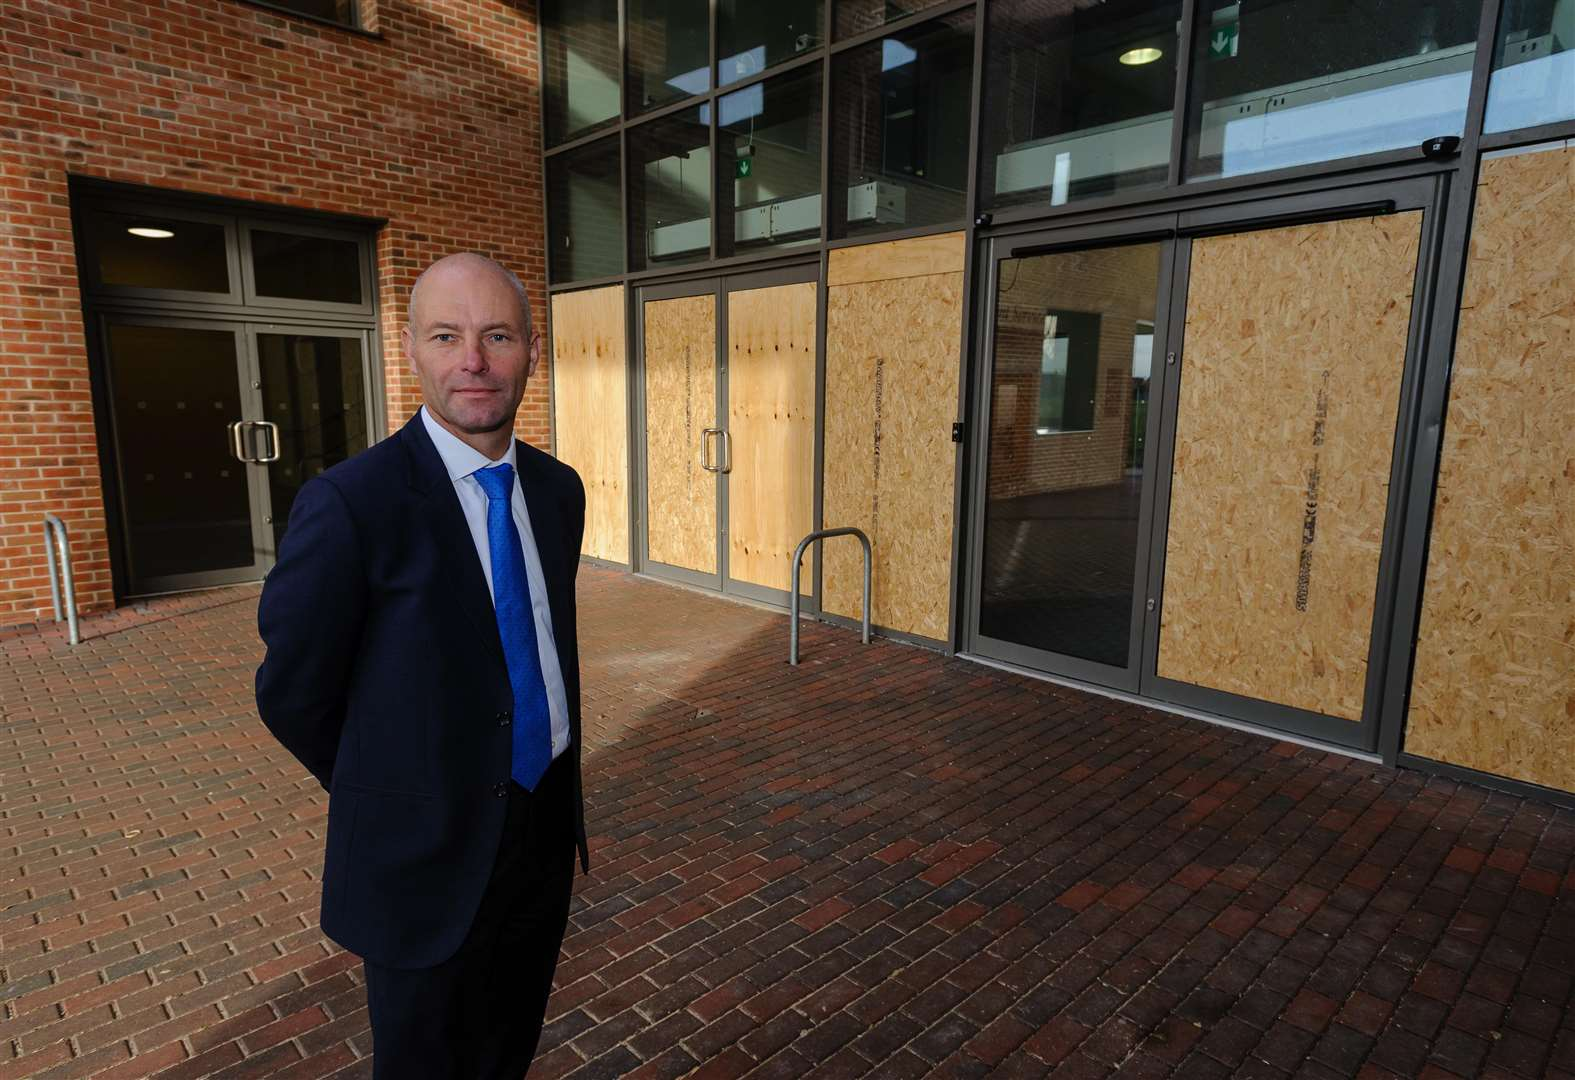 Headteachers condemn acts of vandalism at schools in Great Cornard and Sudbury